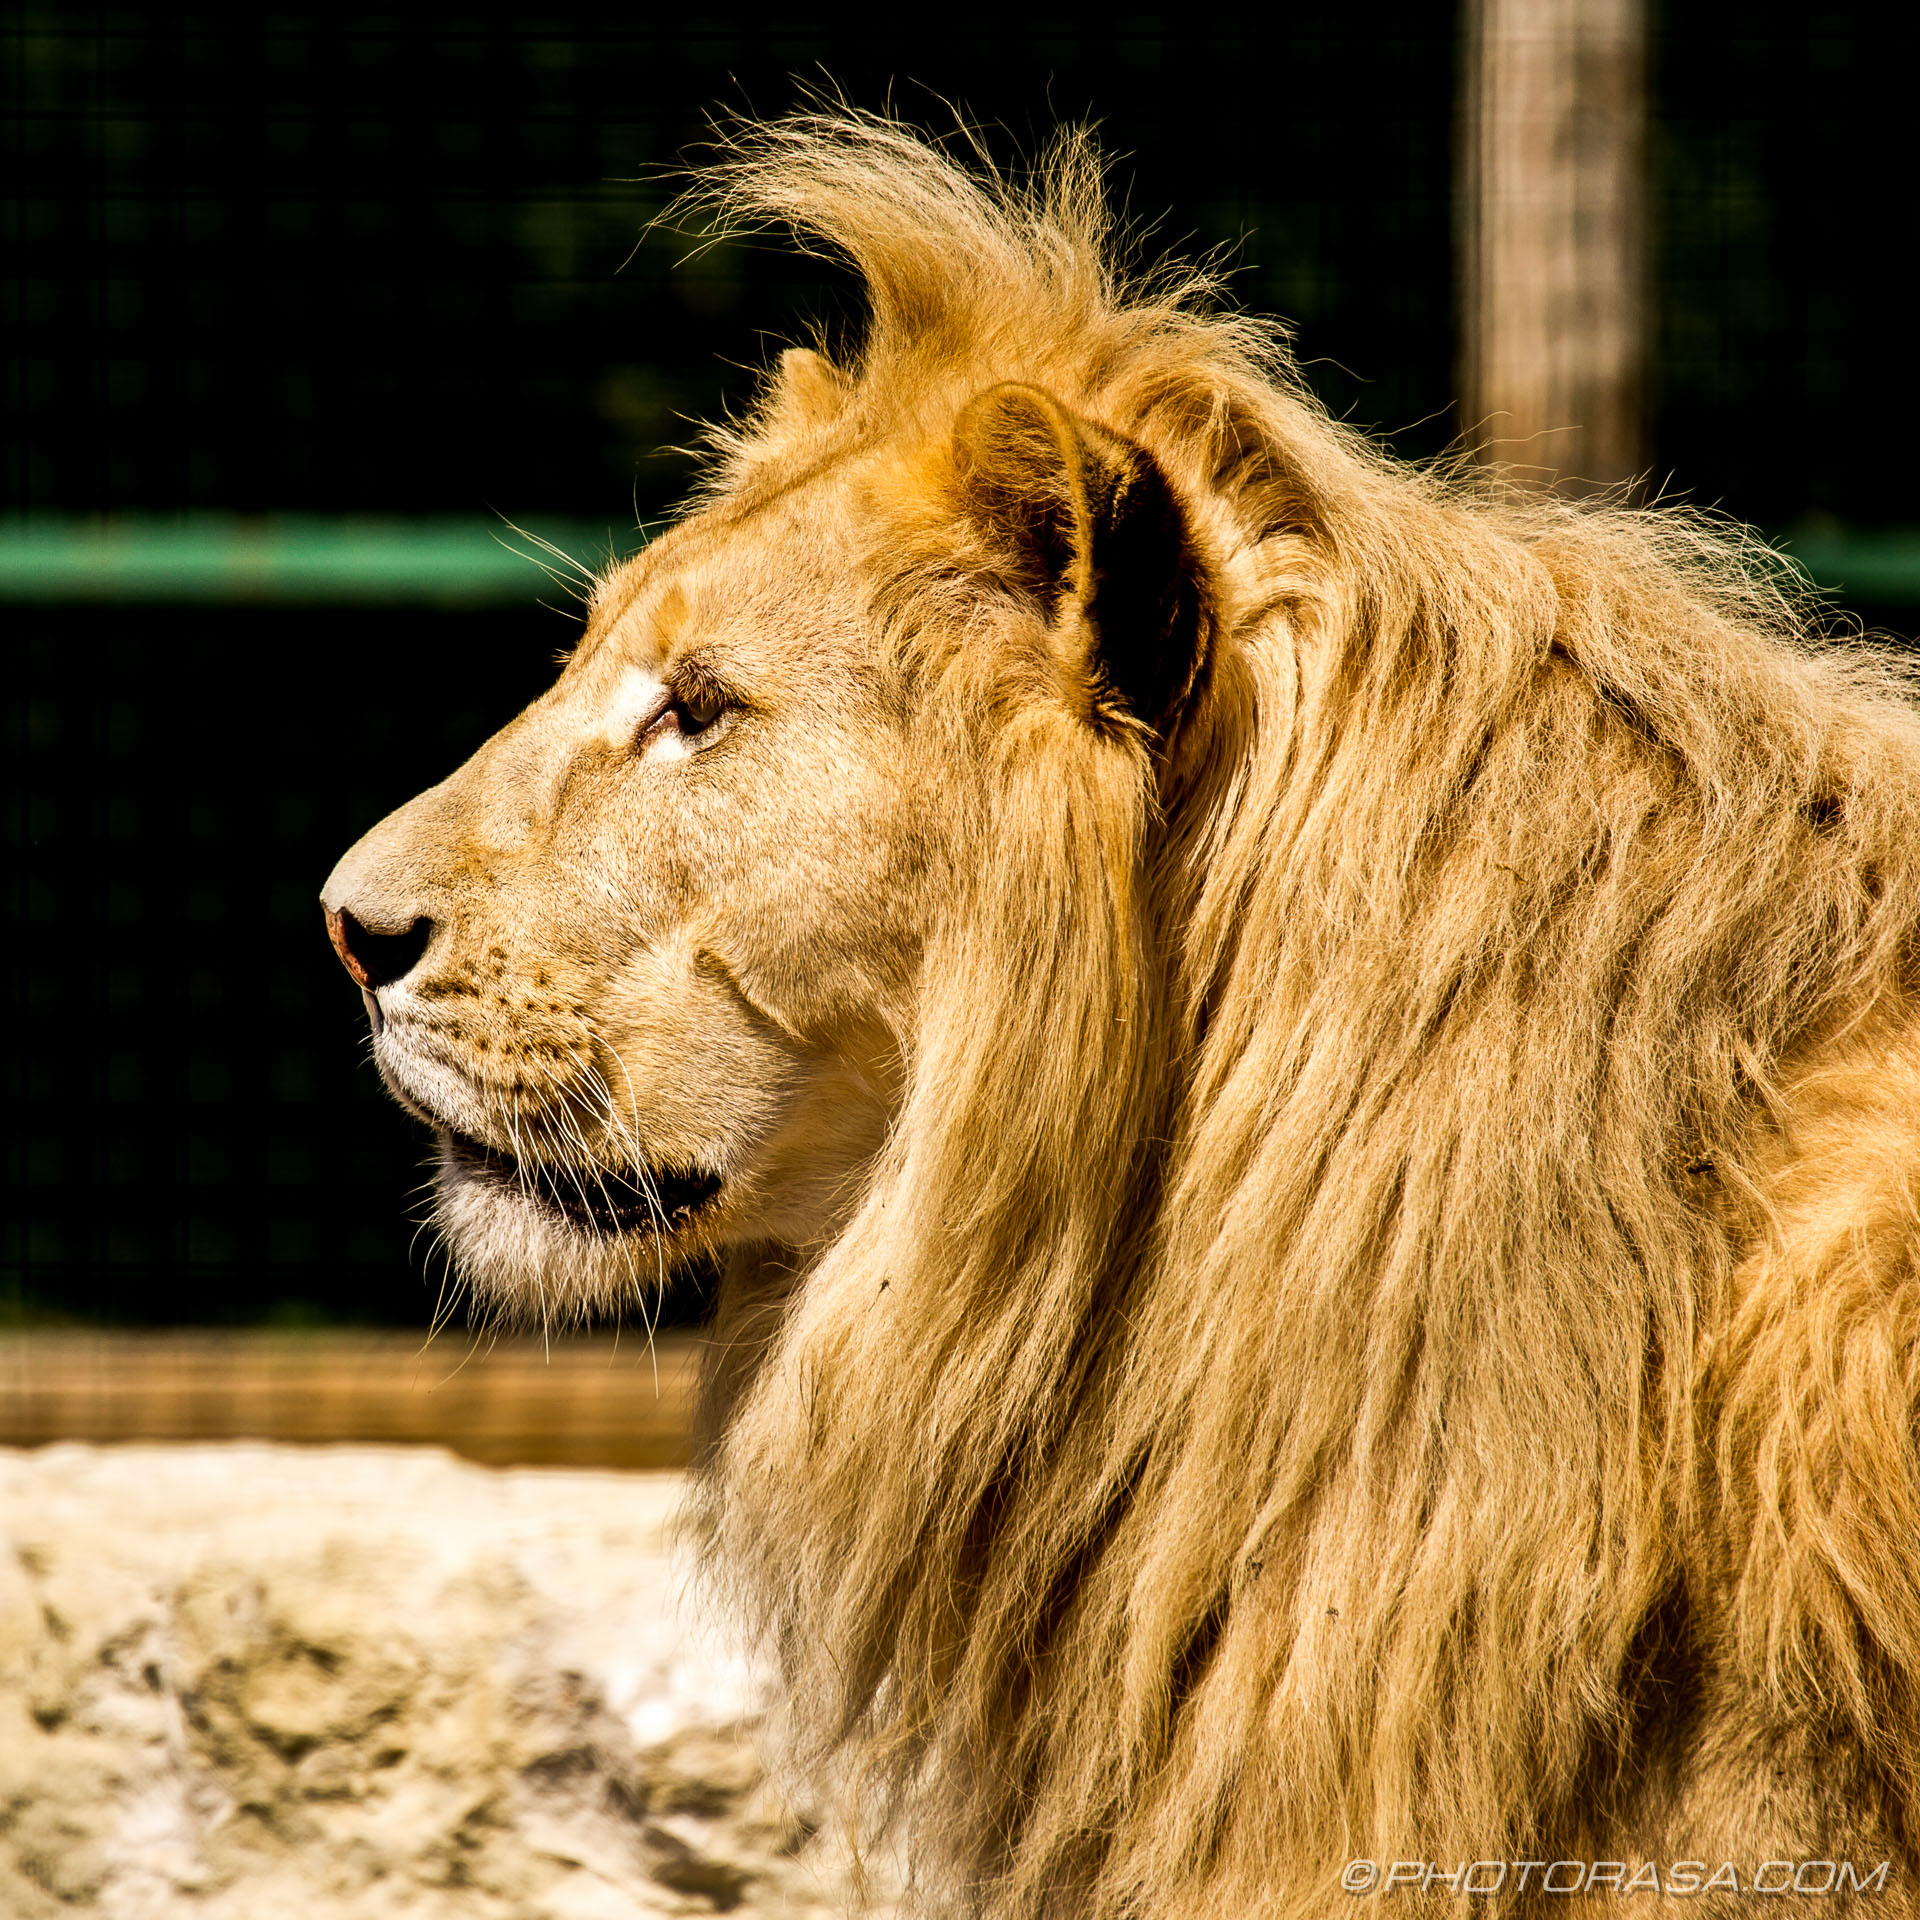 http://photorasa.com/white-lion/white-lion-side-view/